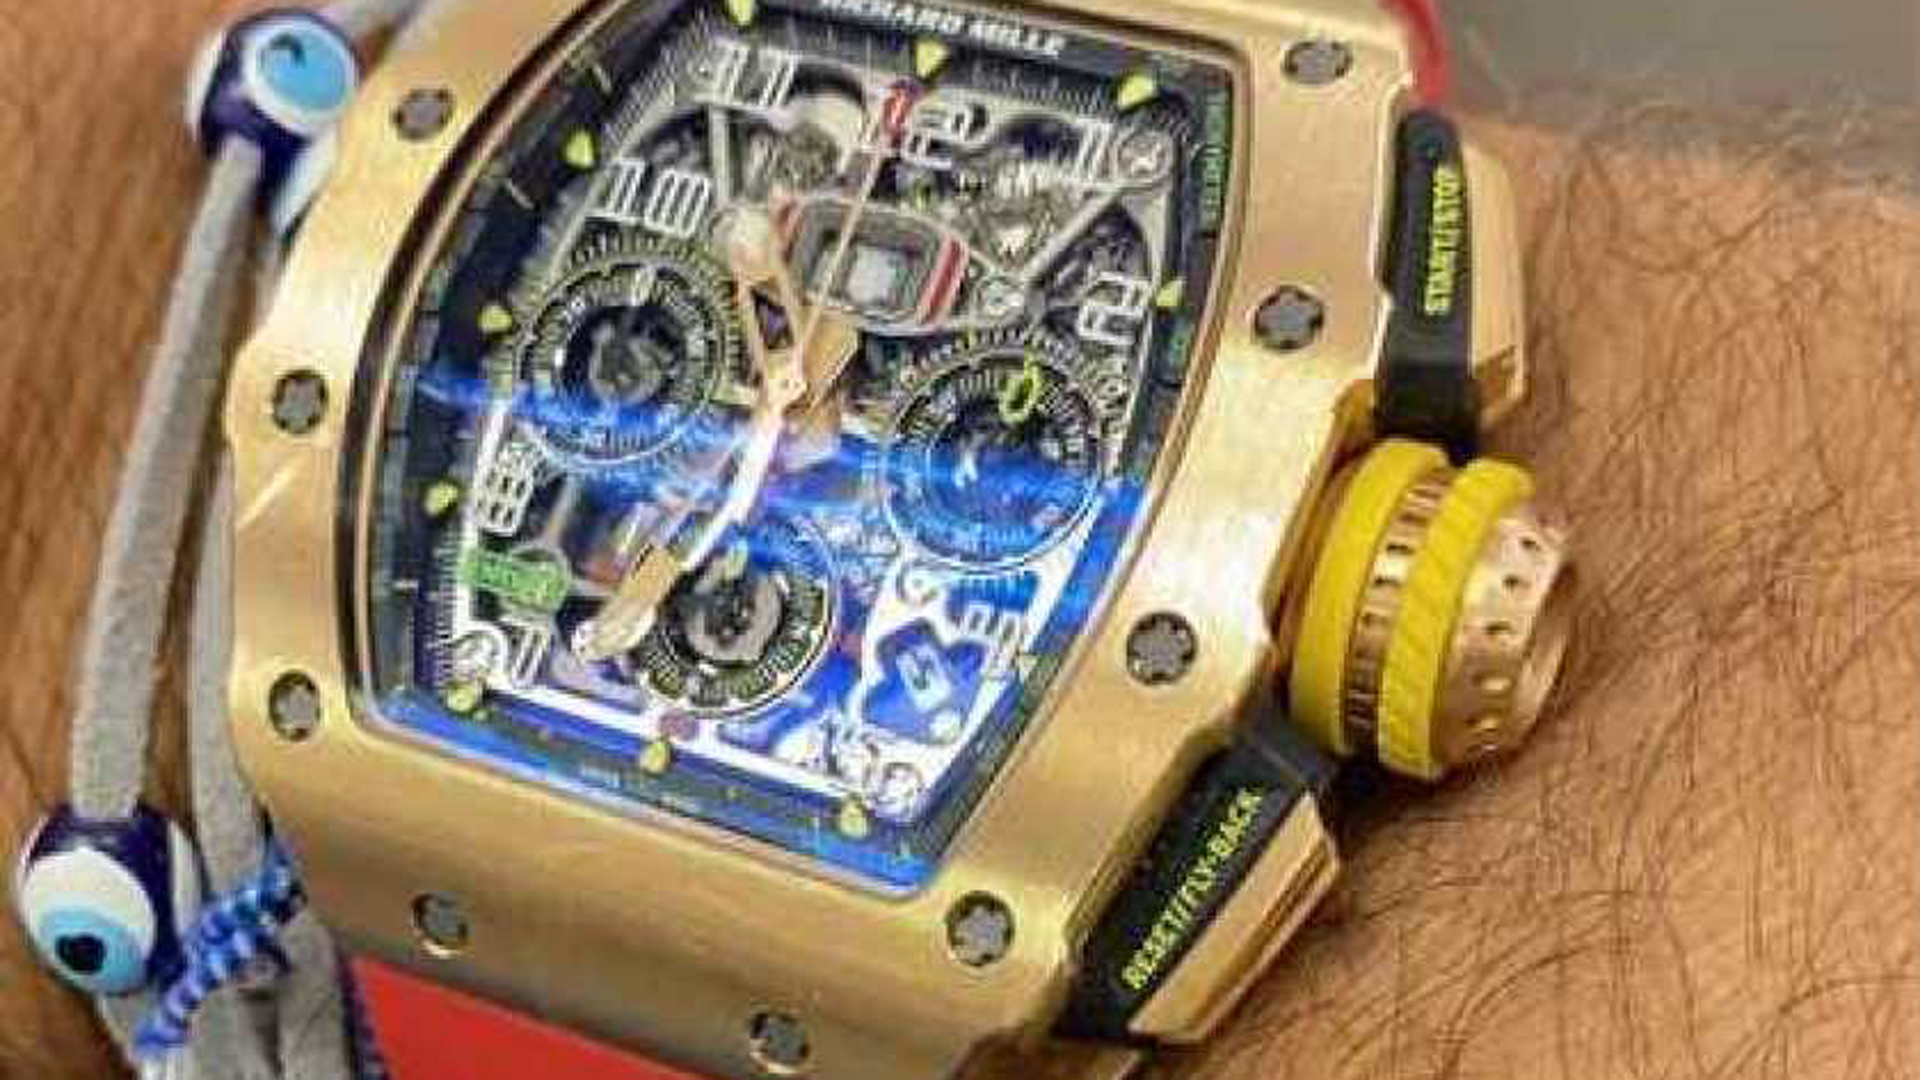 Robbers took Shay Belhassen's rose gold Richard Mille RM 11-03 Flyback Chronograph watch during a robbery and shooting in Beverly Hills on March 4, 2021. (Shay Belhassen via Los Angeles Times)